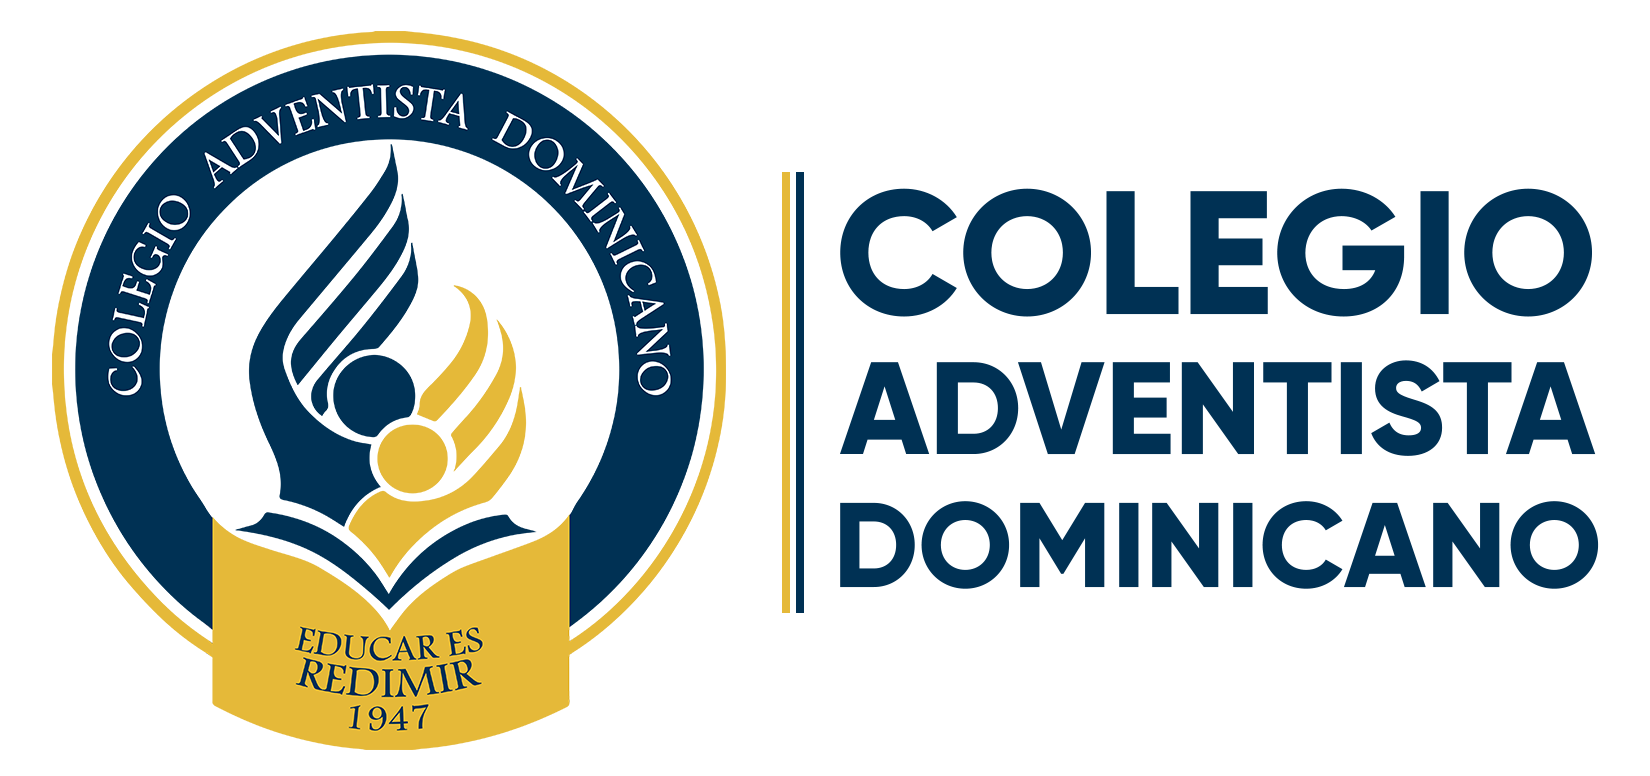 Colegio Adventista Dominicano